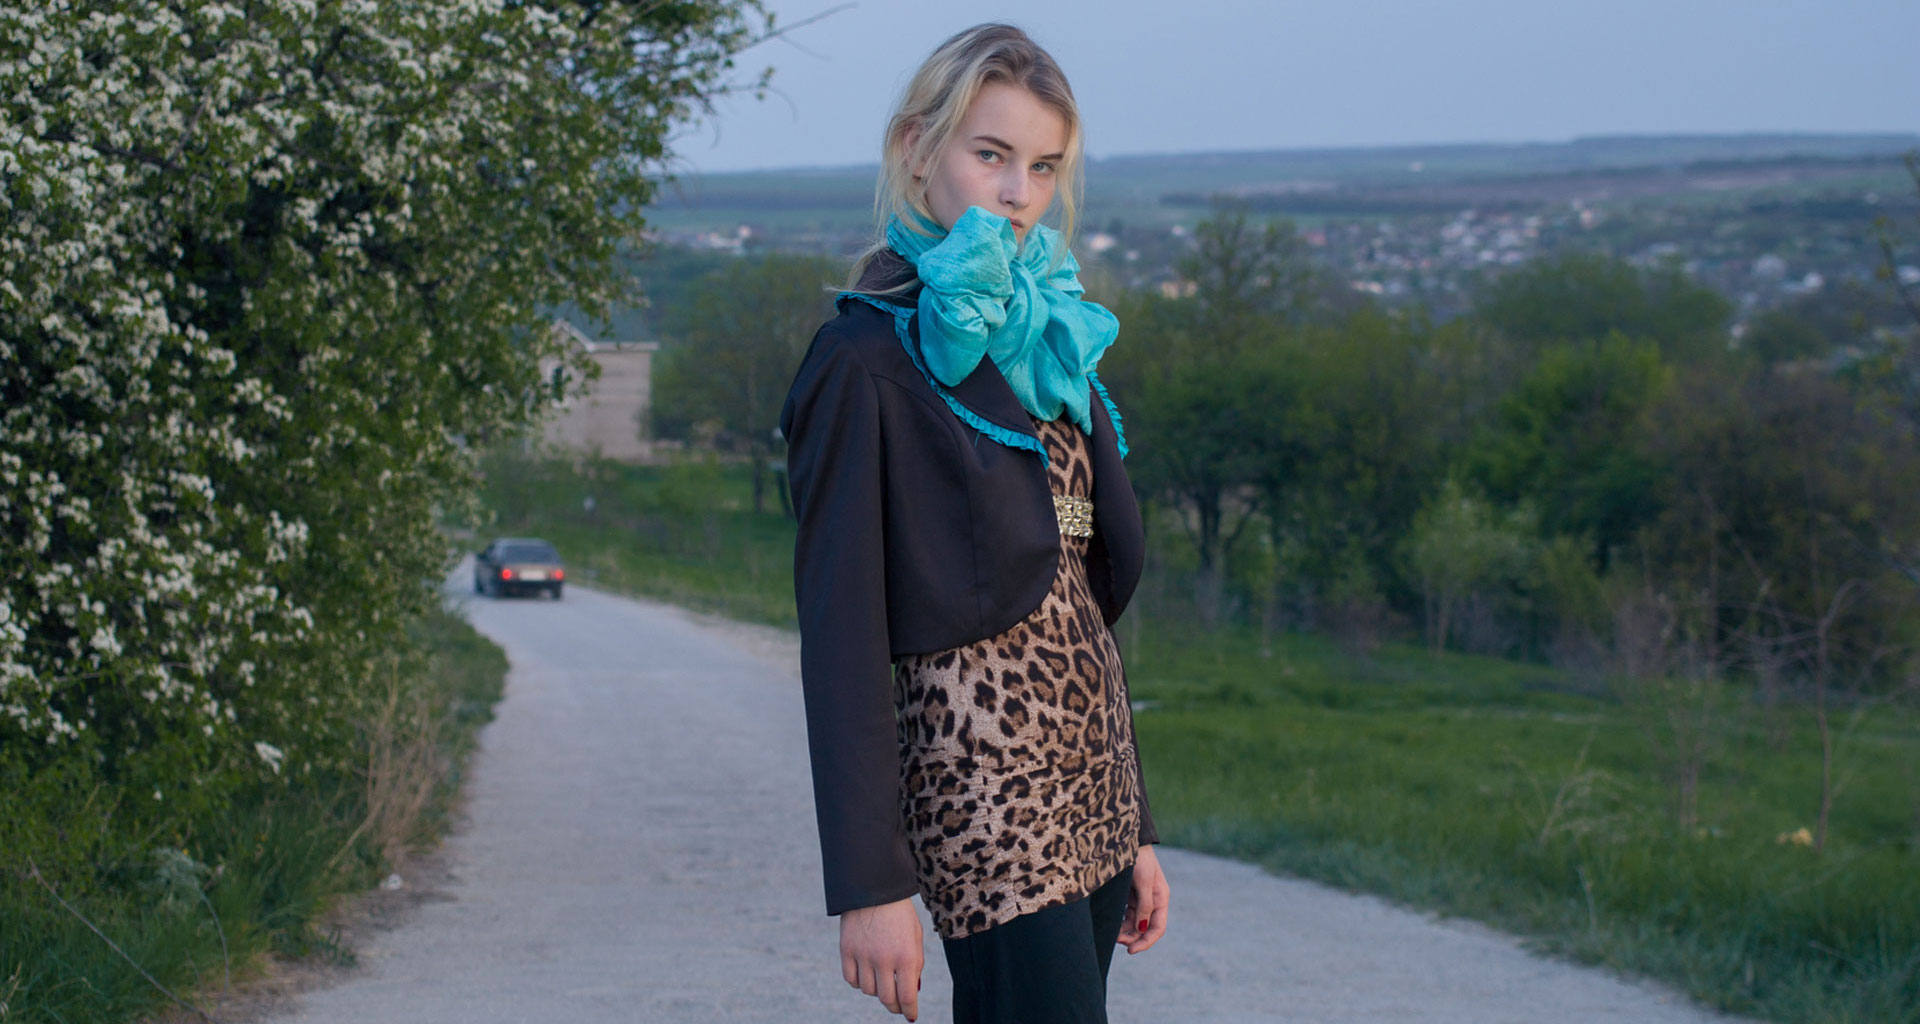 Thrifting and teen thrills: photos of Russian youth's love affair with second-hand clothes